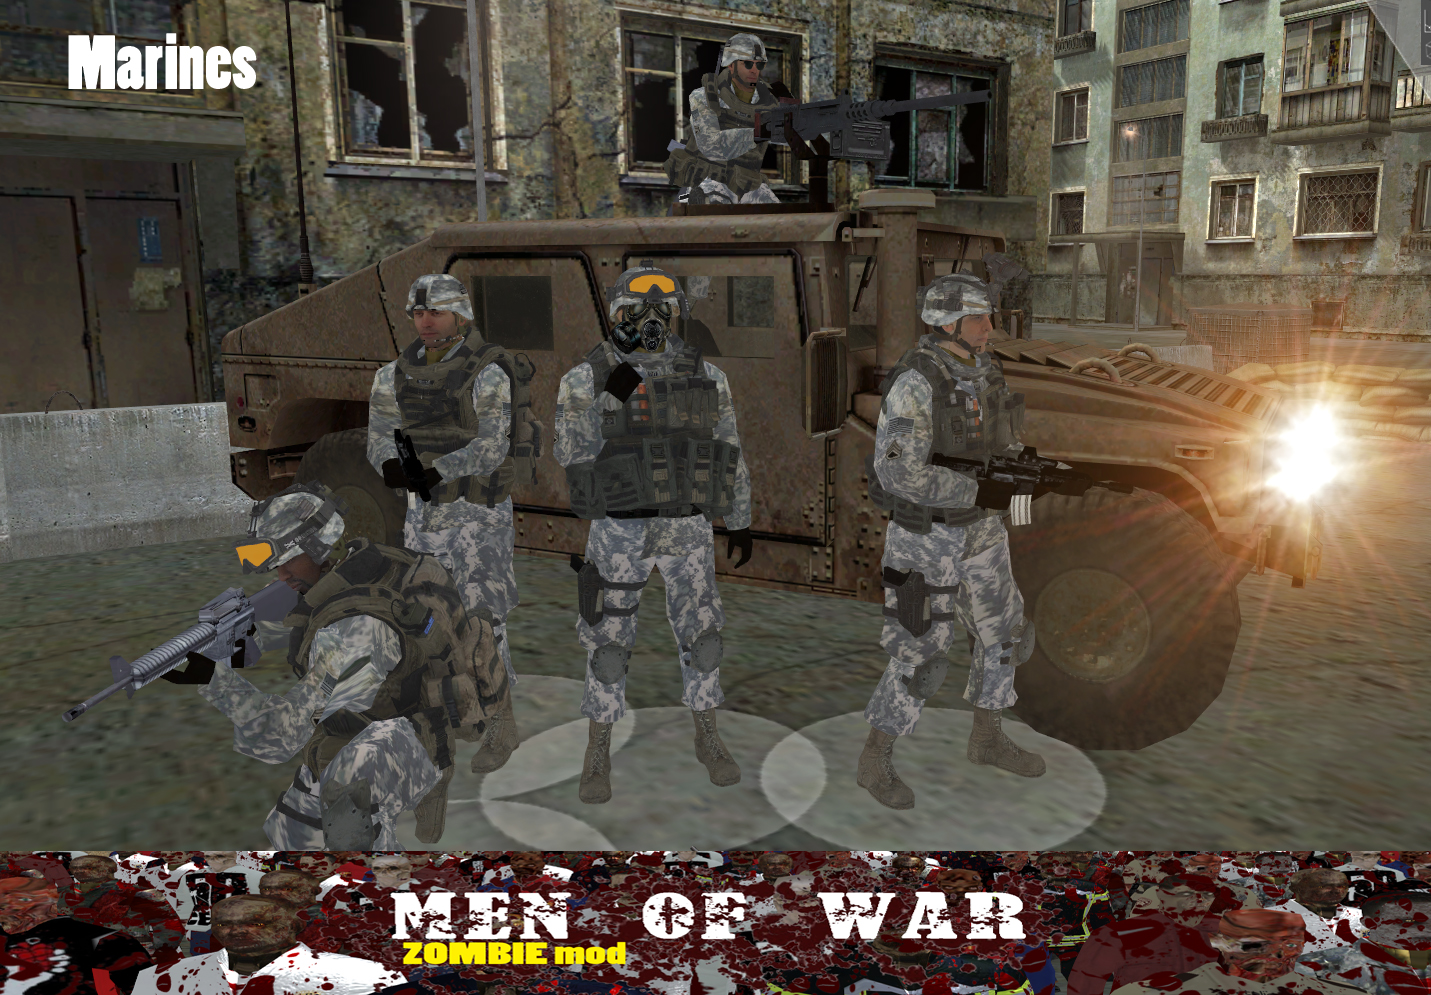 ZOMBIE mod image - old page mod for Men of War - Mod DB